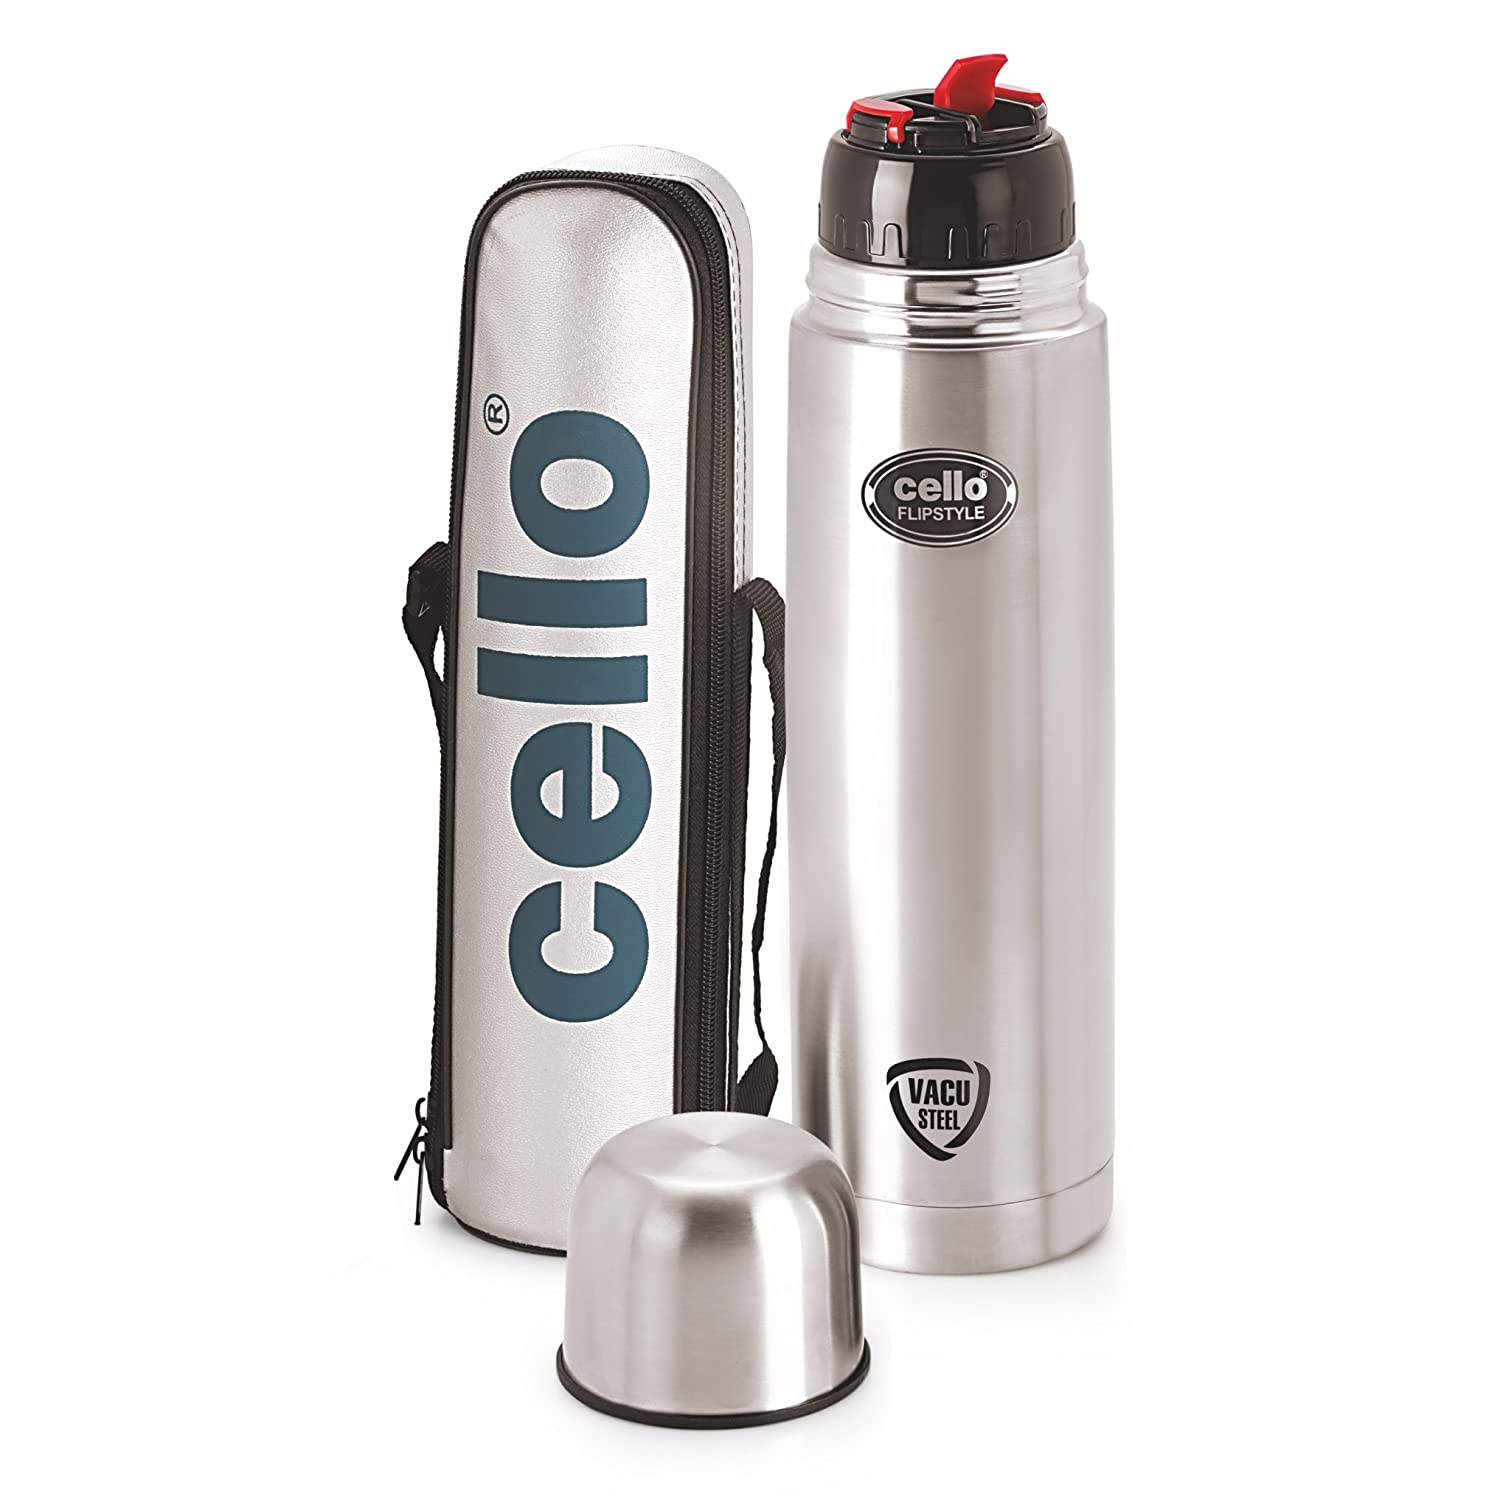 Cello Flip Style Stainless Steel Flask